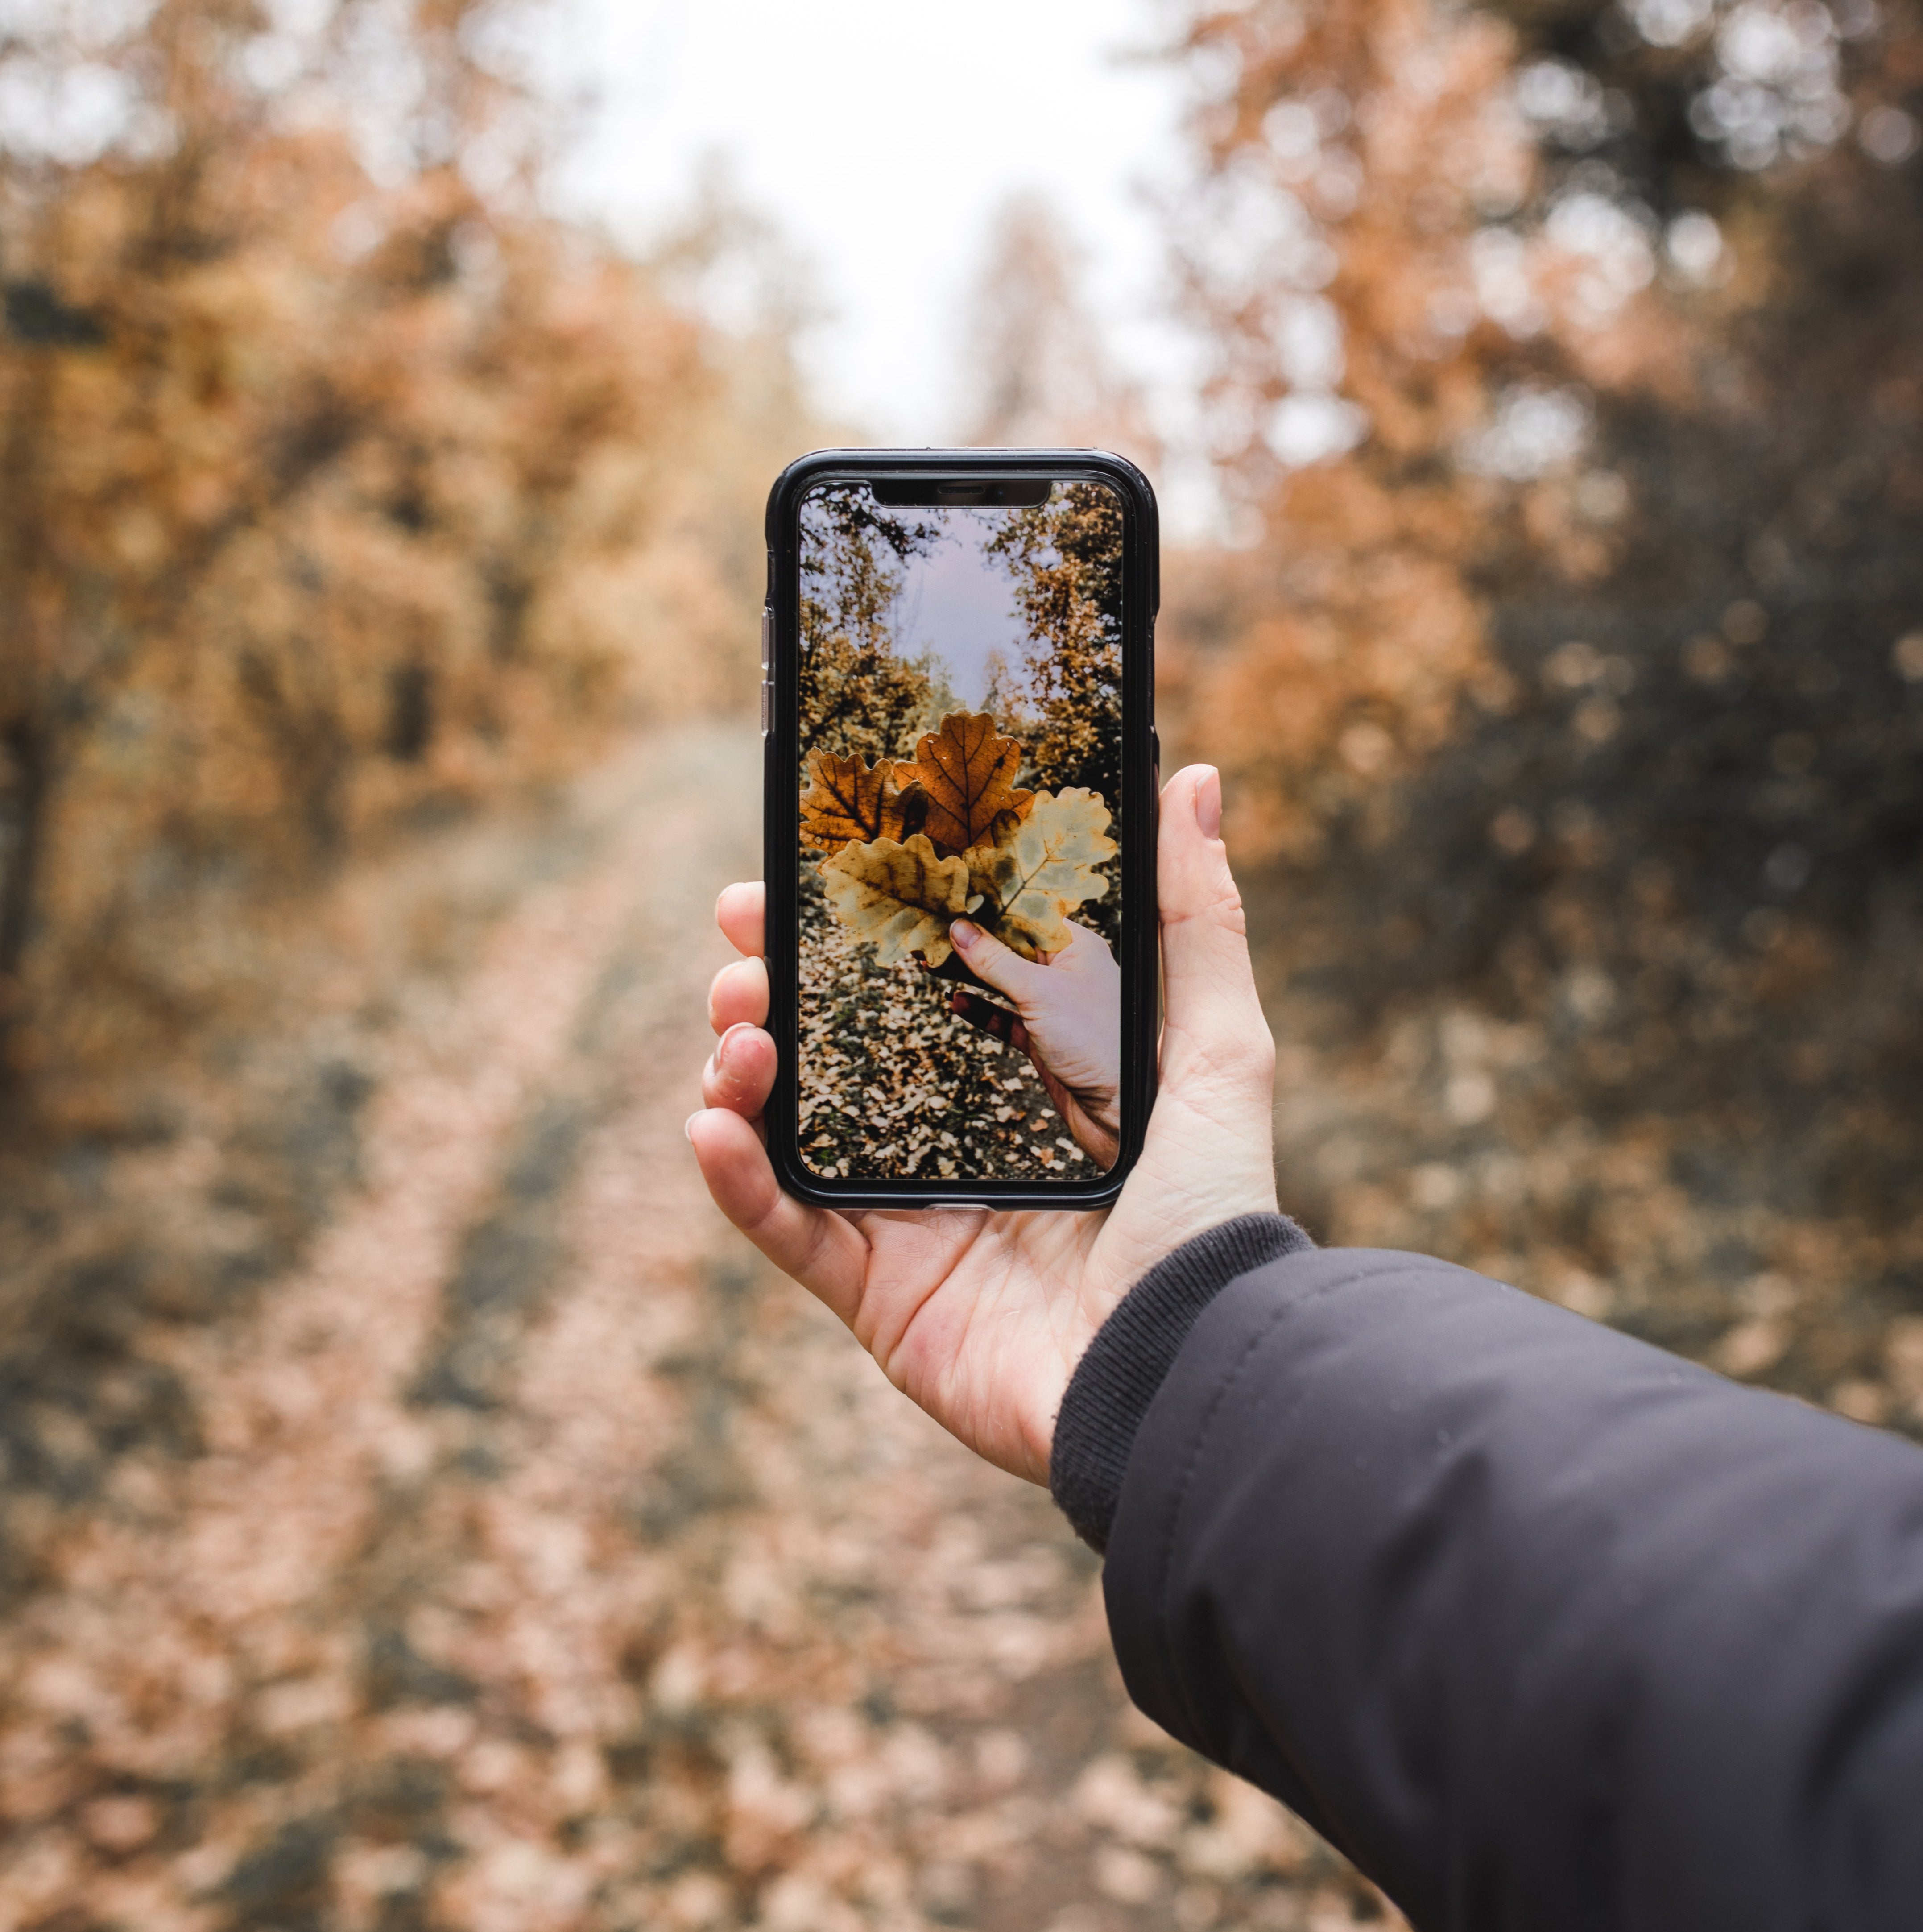 Autumn Photo Ideas - Person Holding Smartphone Capturing a Fall Picture